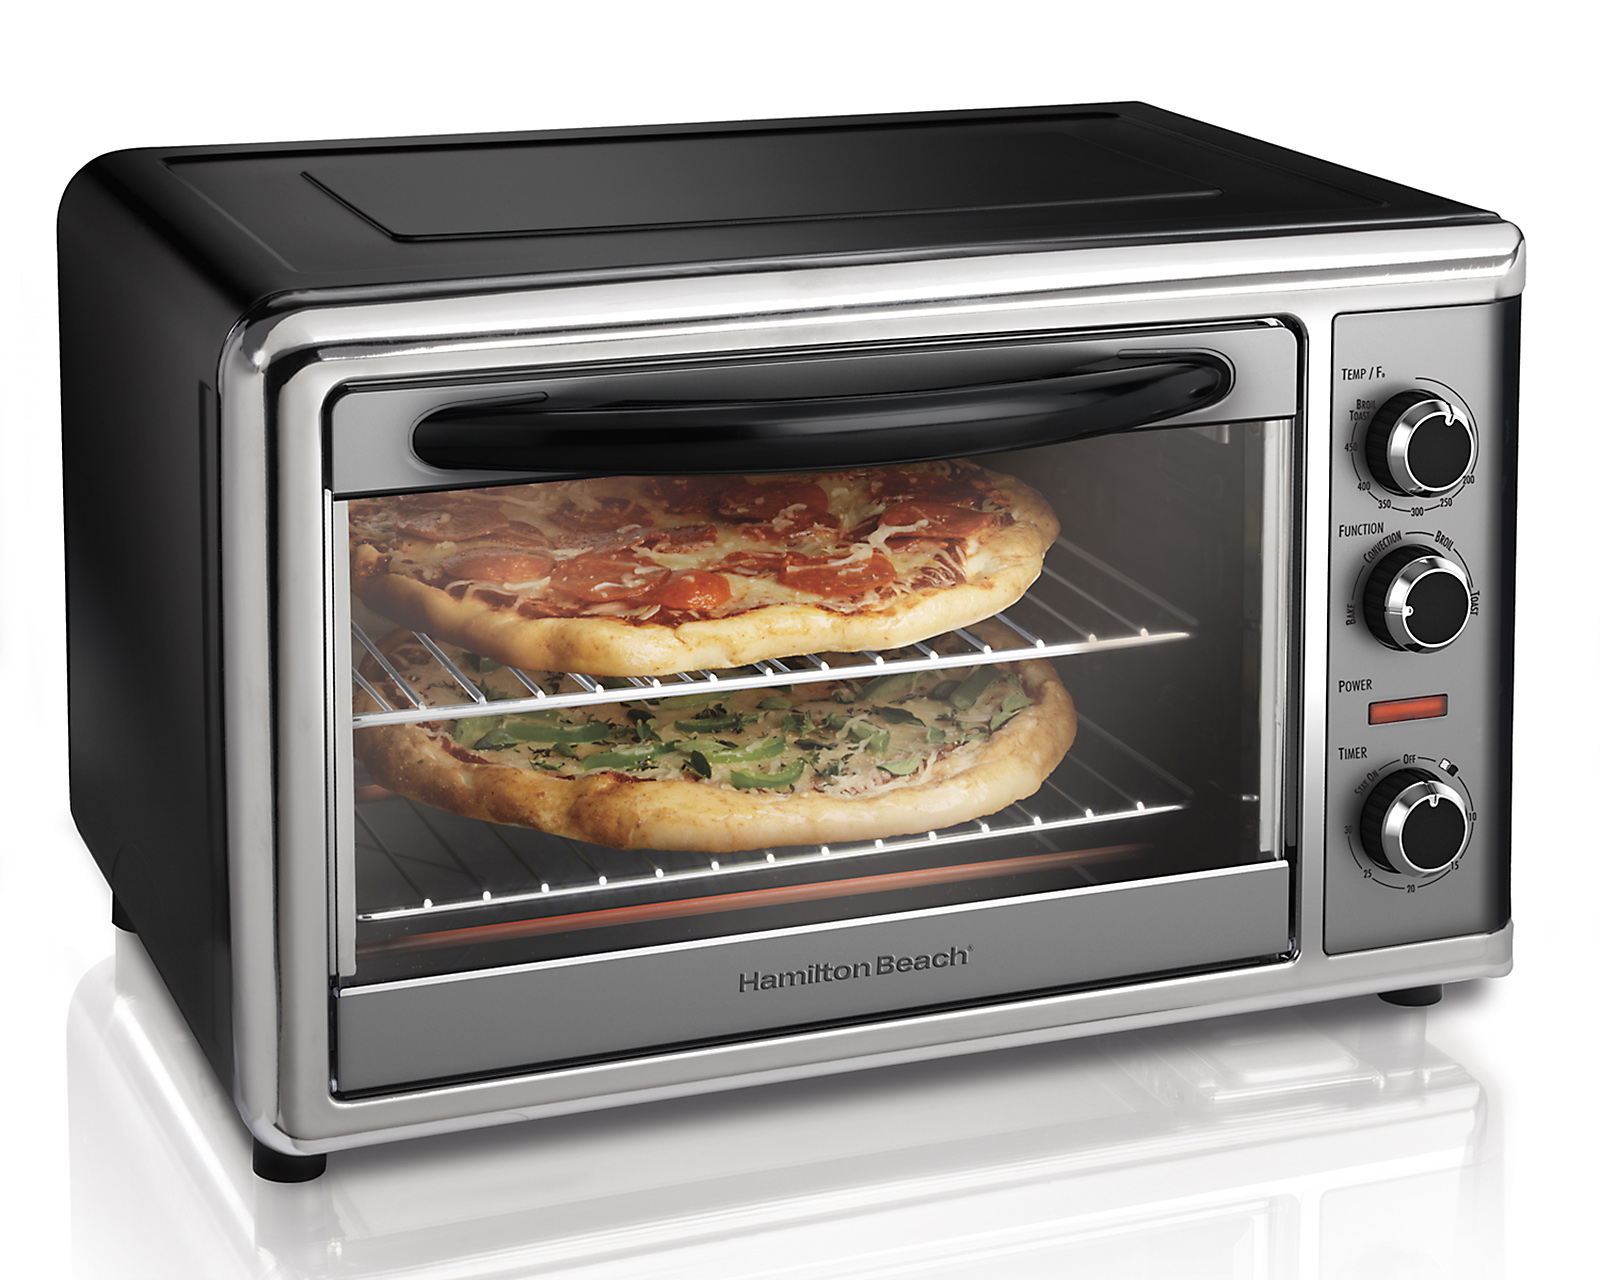 Countertop Rotisserie Ovens Convection Toaster Oven Broiler Its Always Easy Cooking